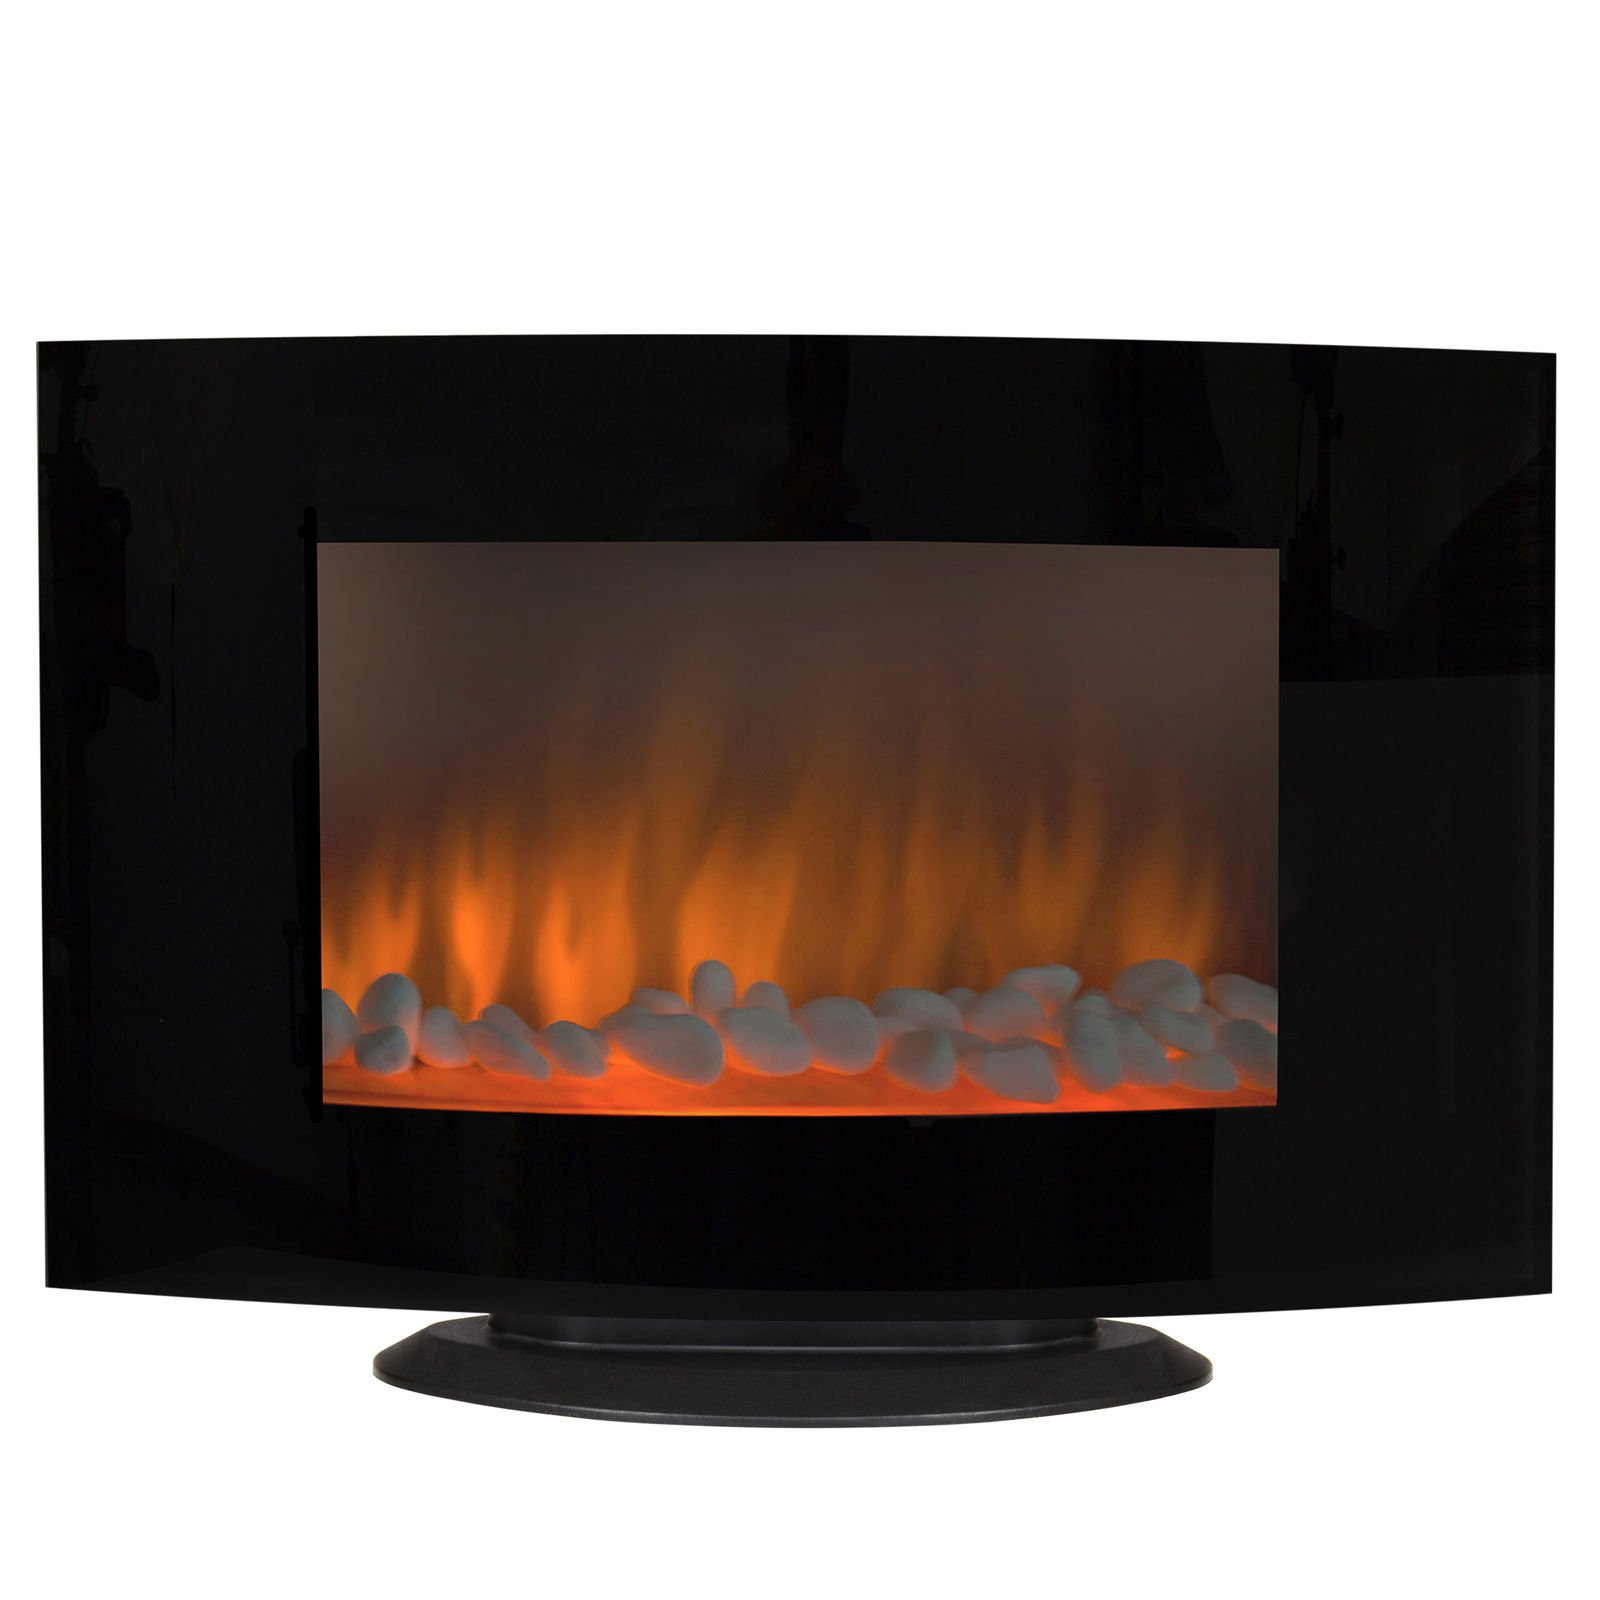 1500W Heat Adjustable Electric Wall Mount Standing Fireplace Heater w/ Glass XL + FREE E-Book